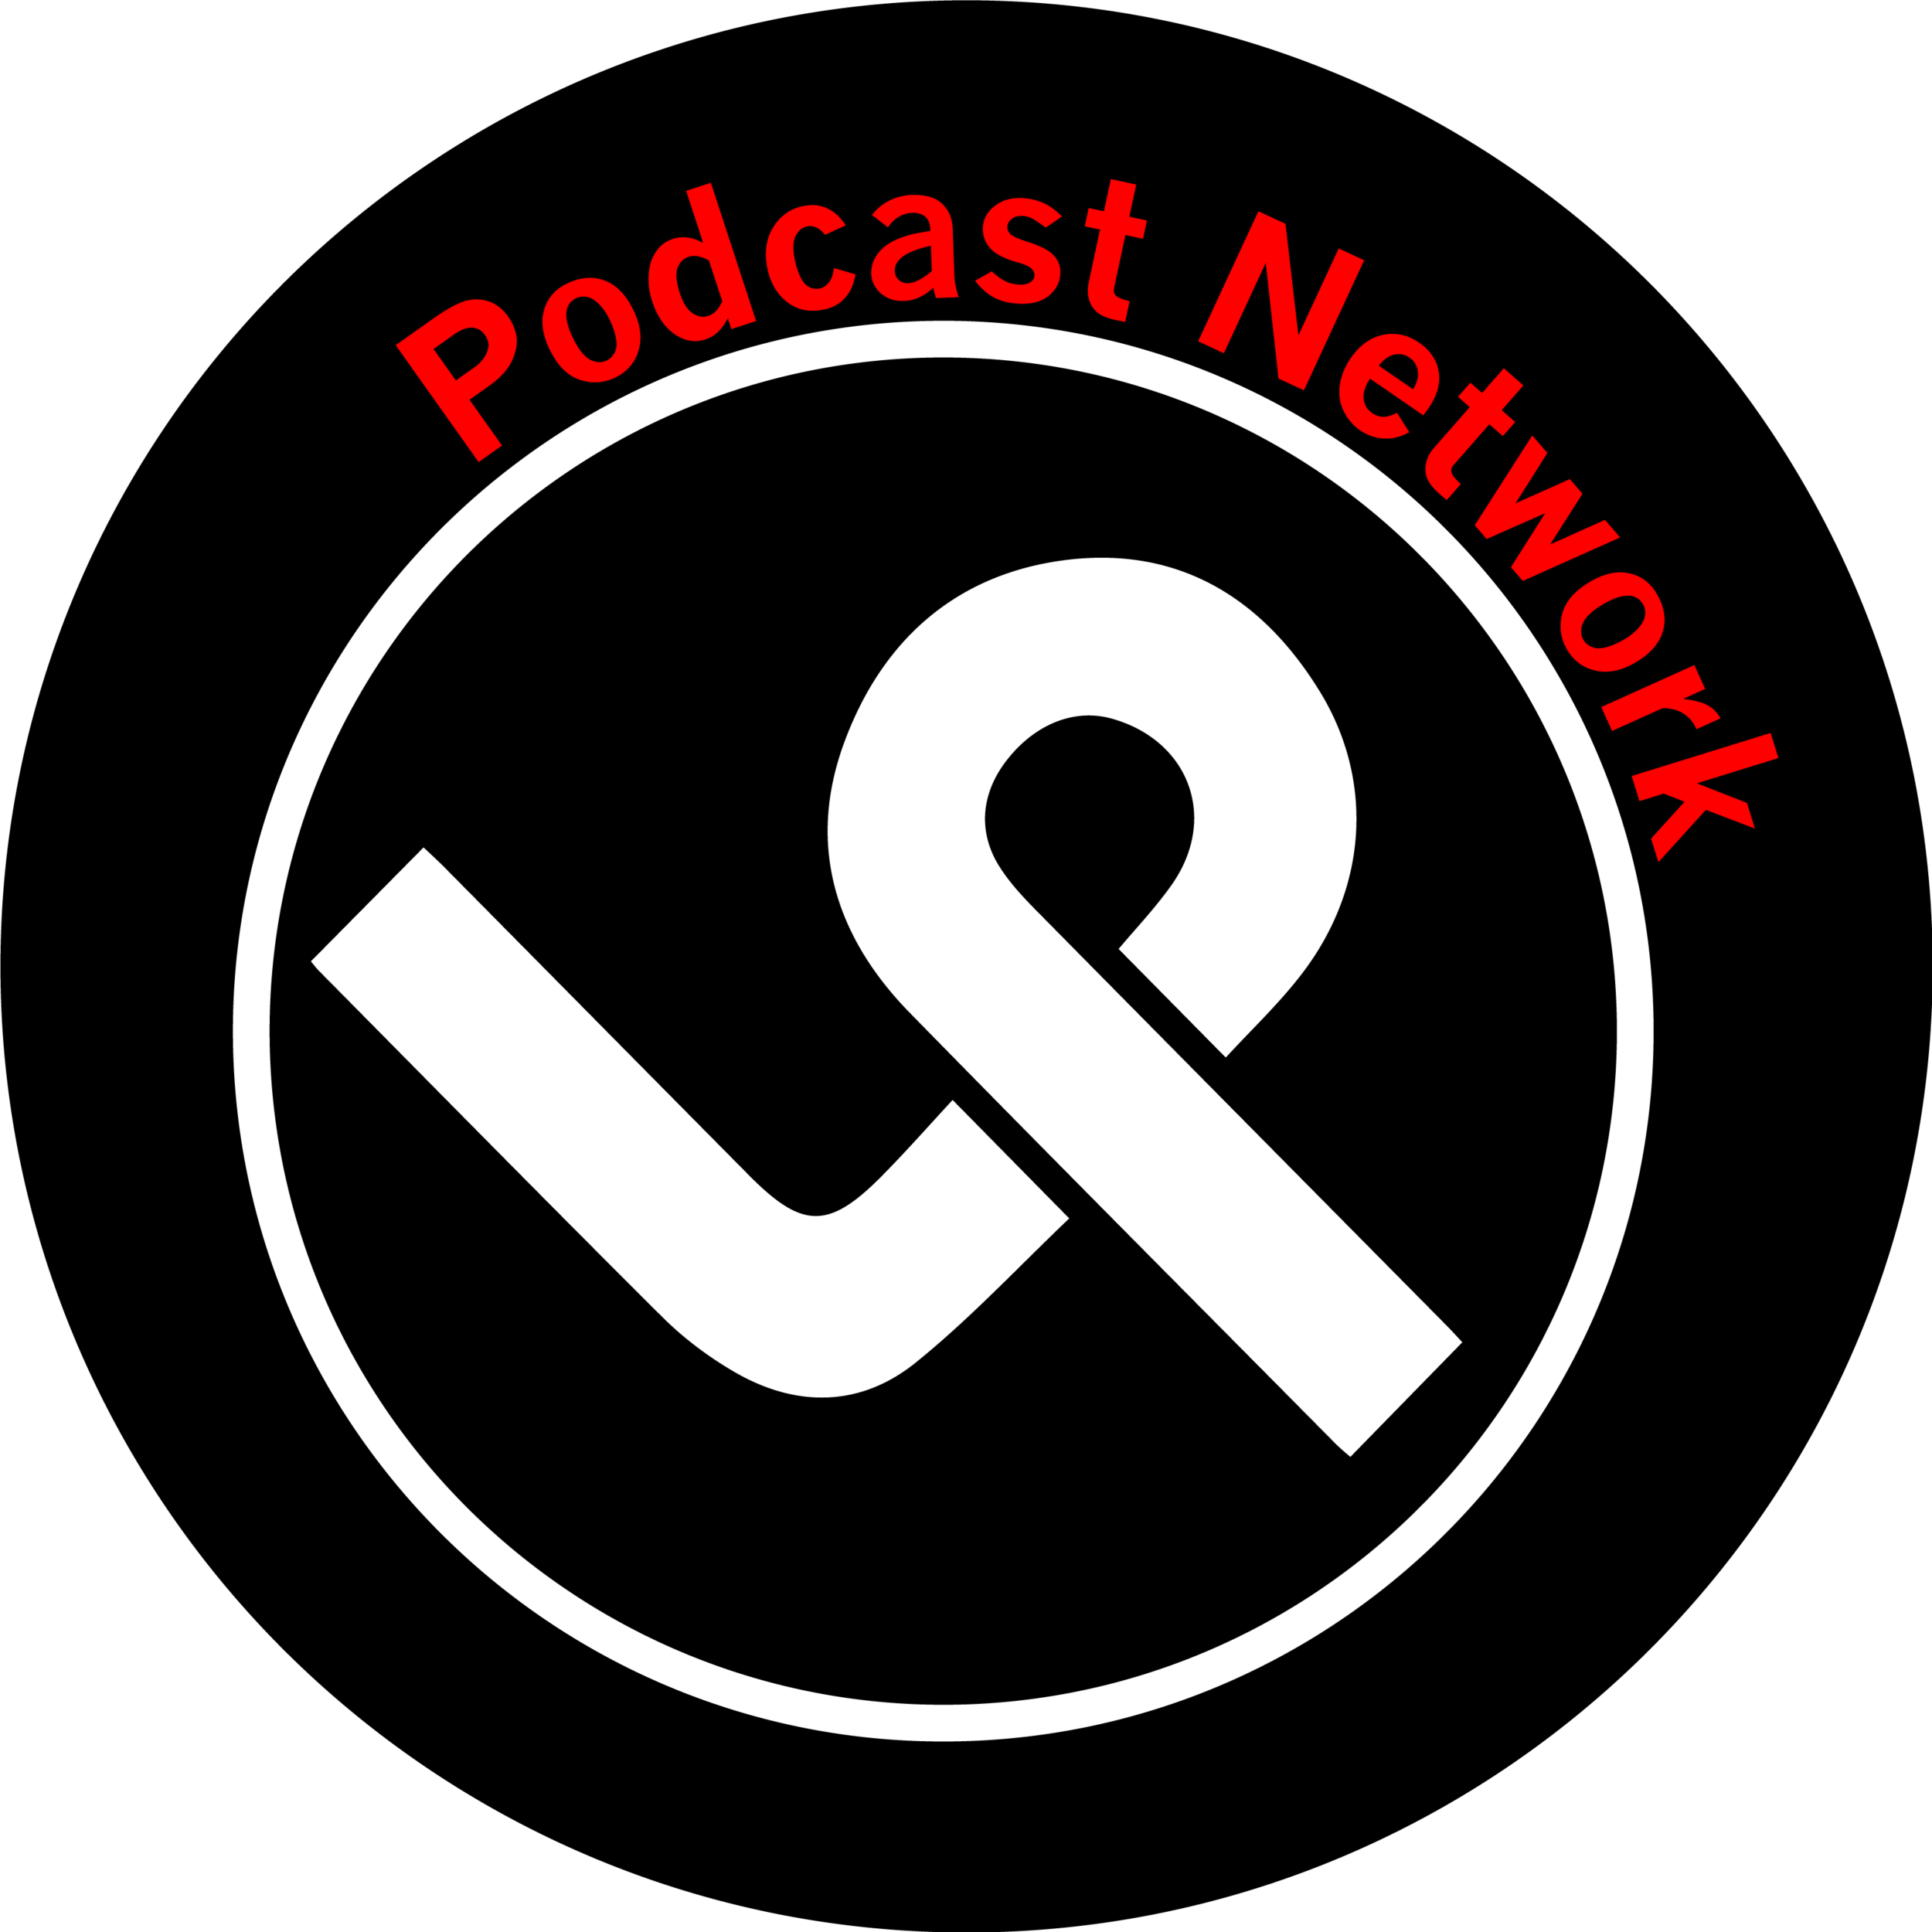 lp-podcast-network-badge.png